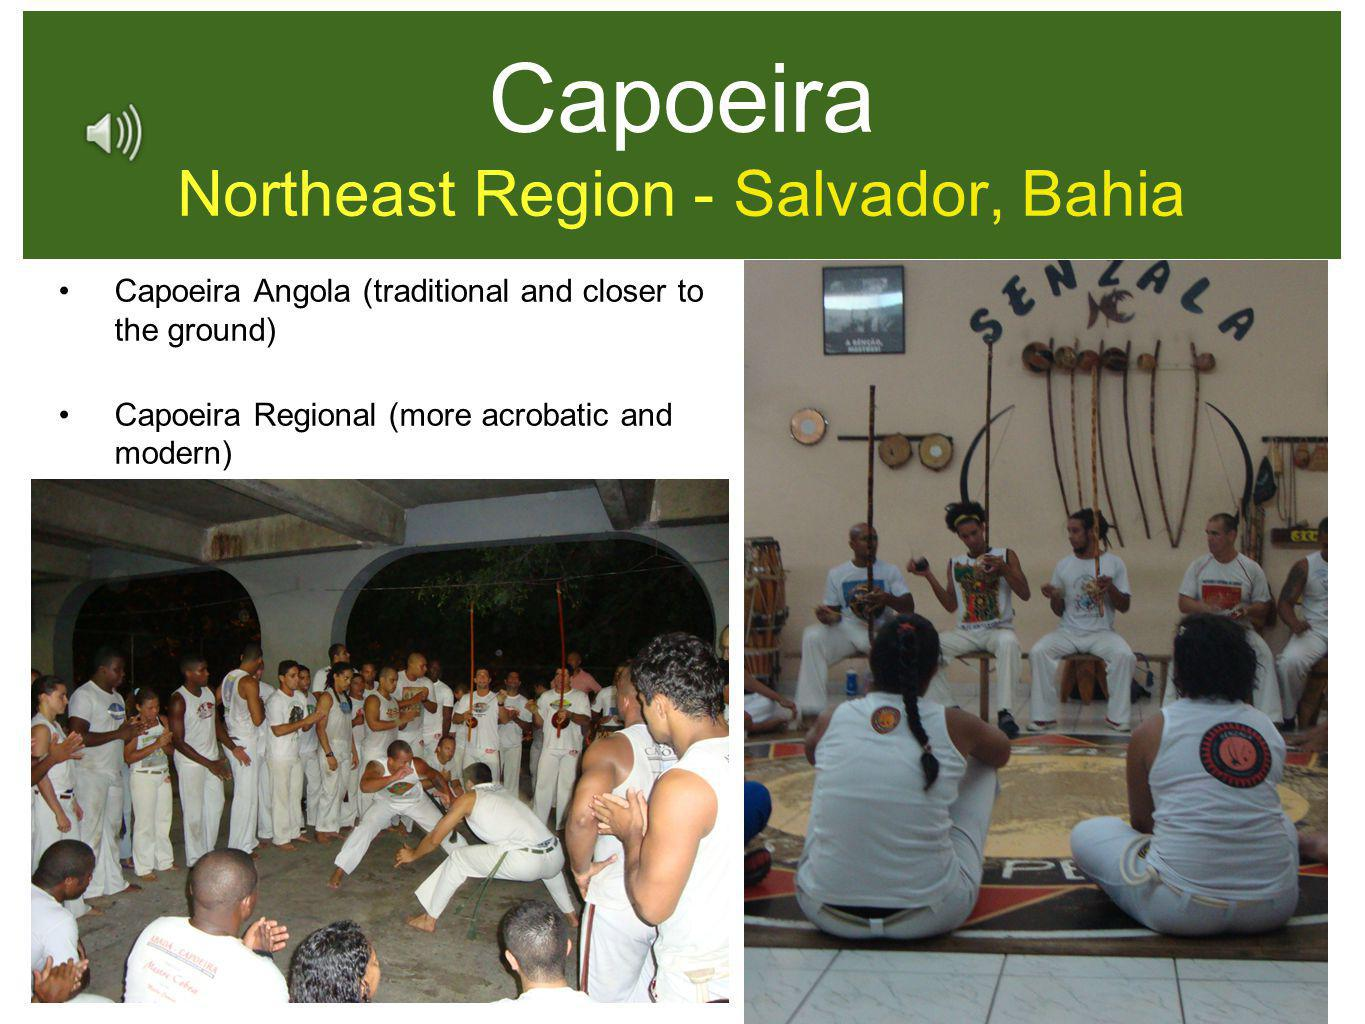 Capoeira Northeast Region - Salvador, Bahia